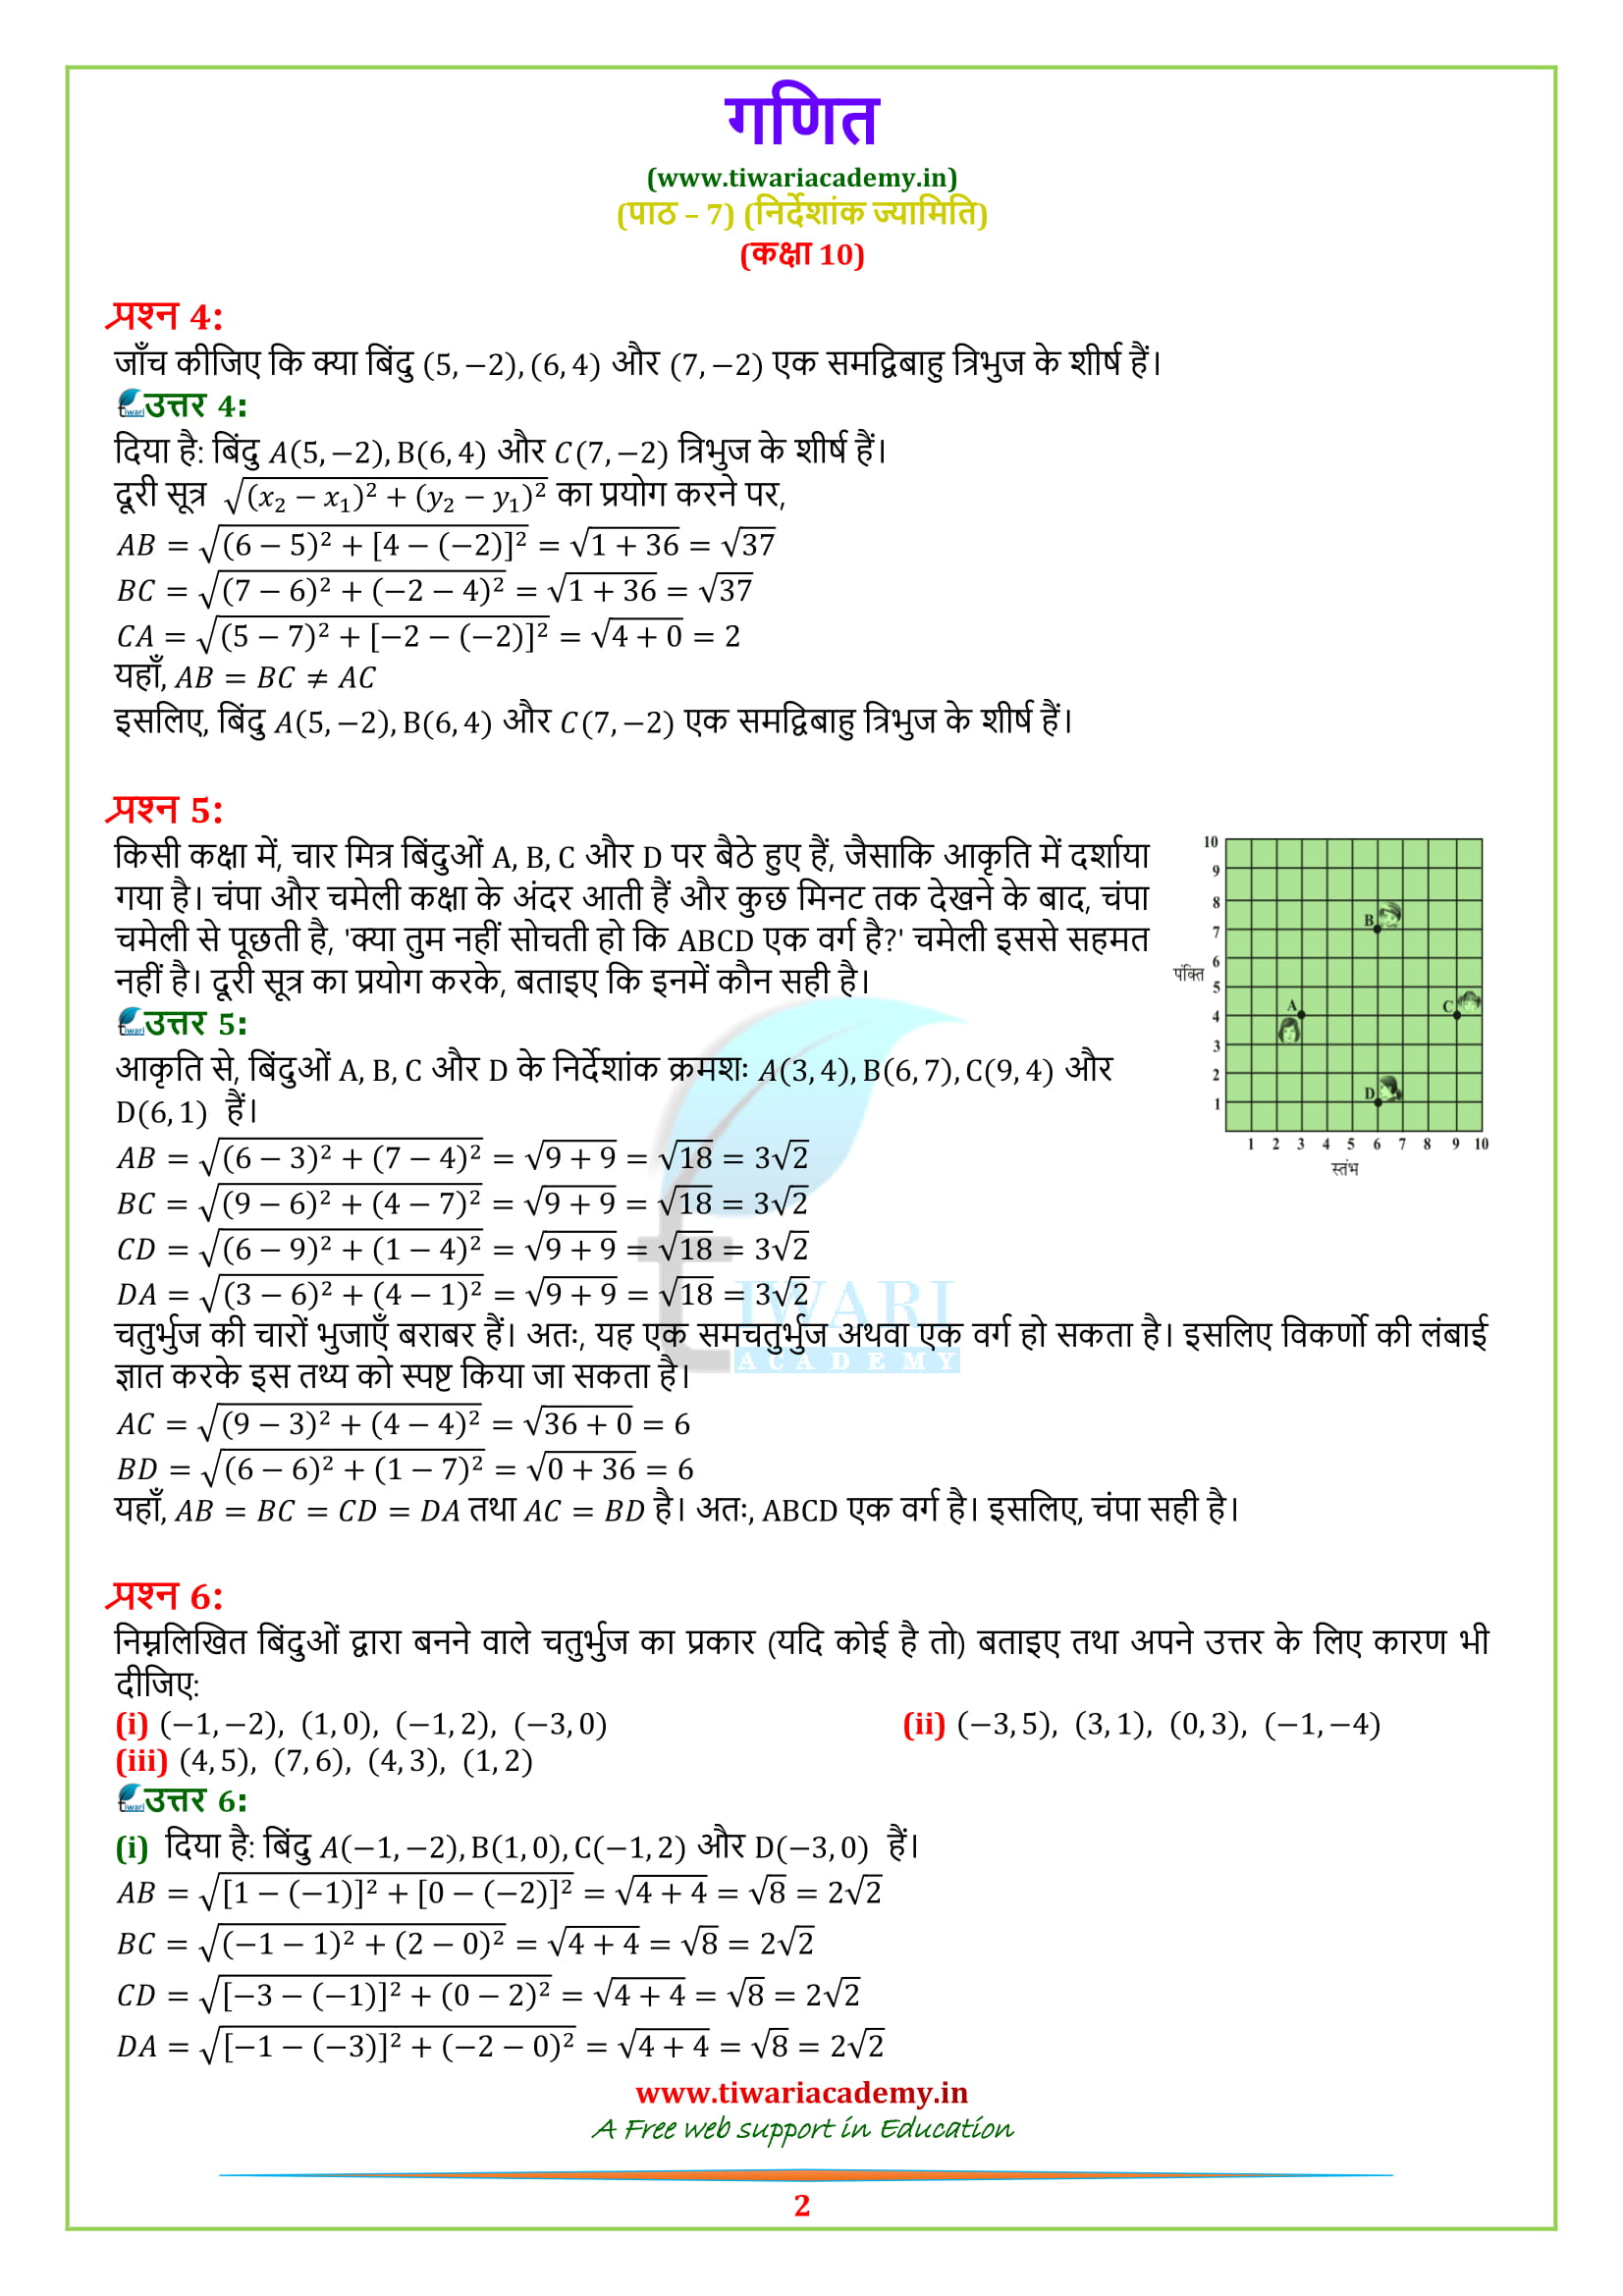 Class 10 Maths Exercise 7.1 ke prashn uttar